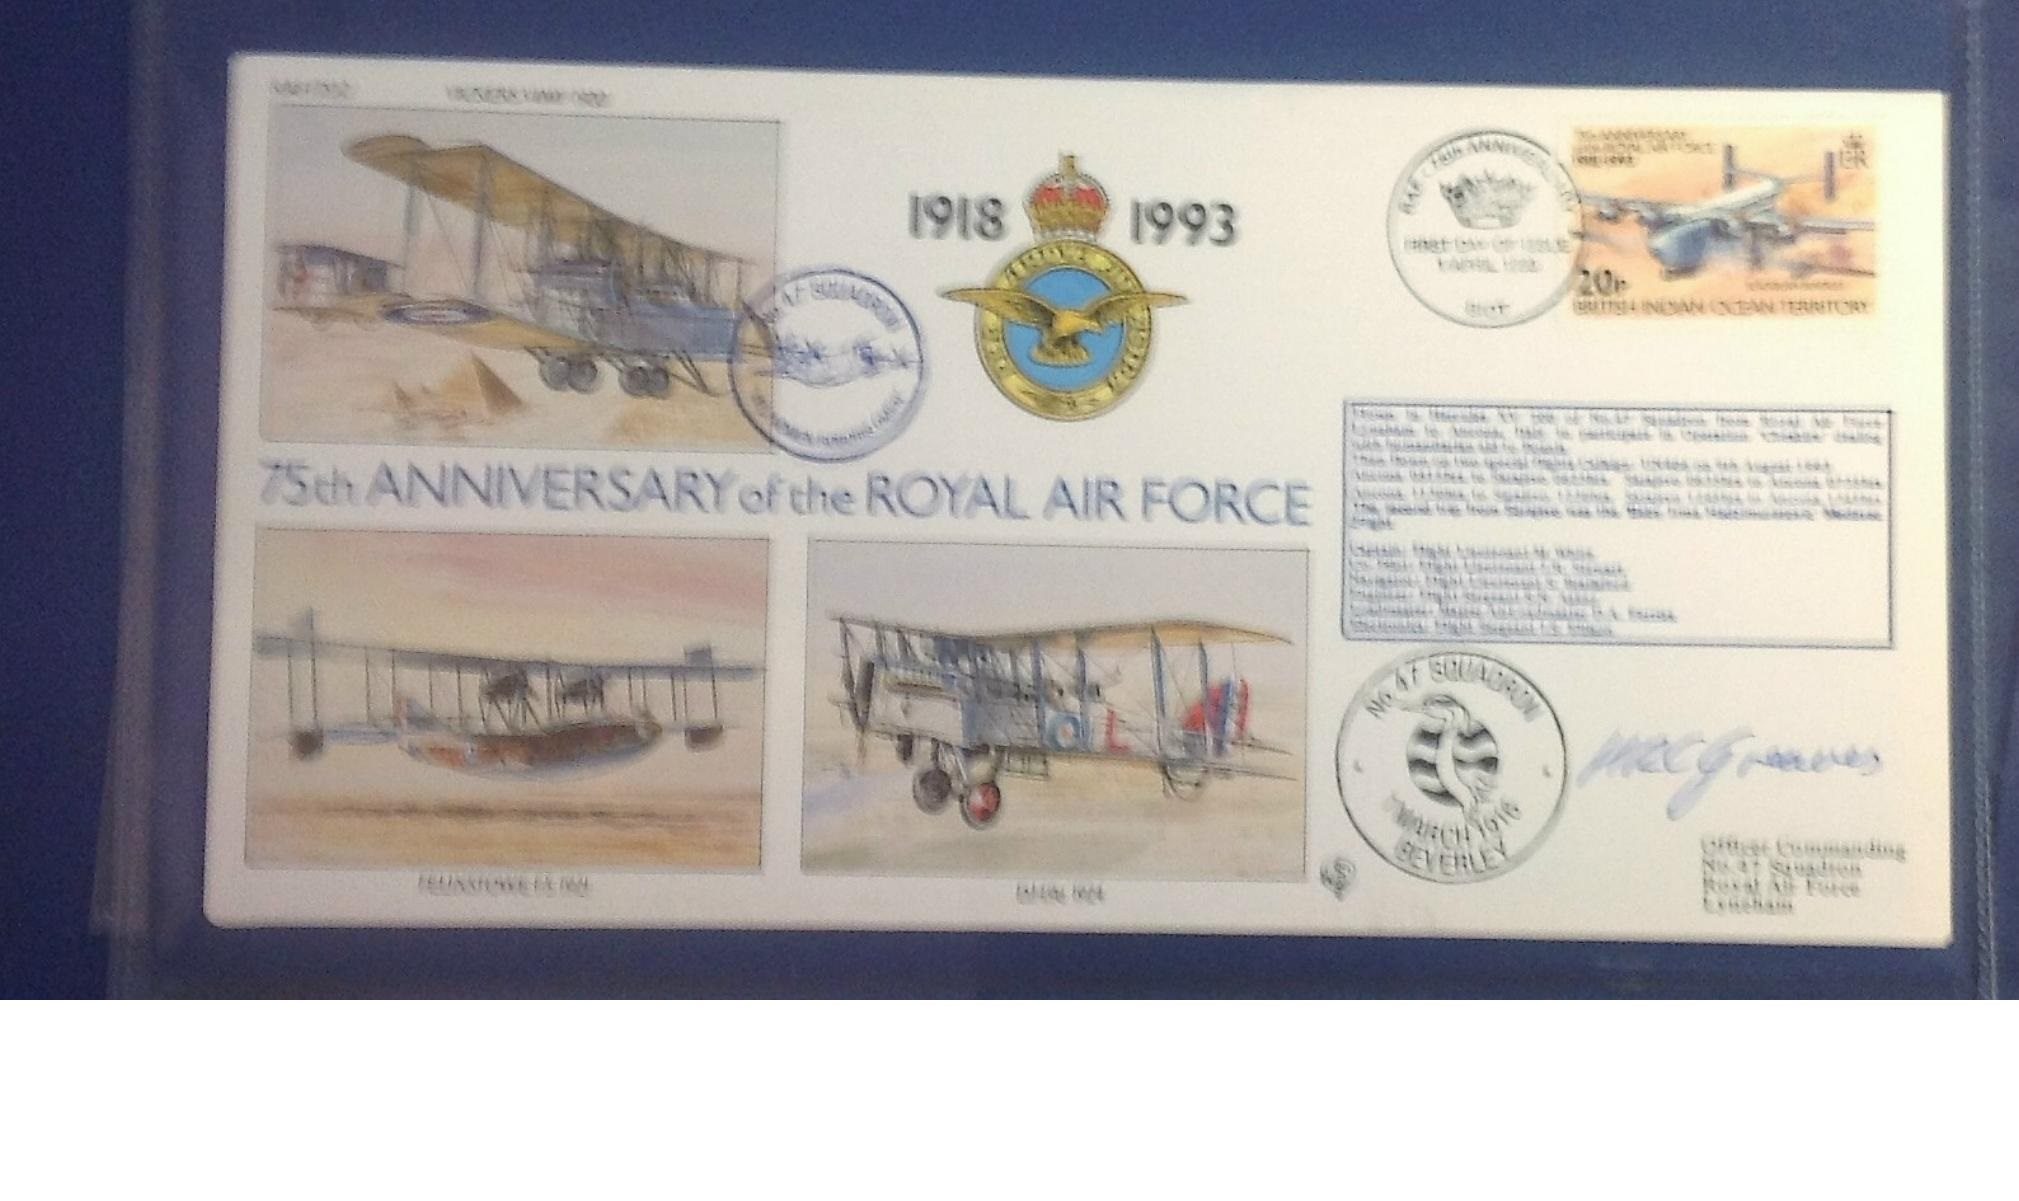 Lot 14 - 75th Ann RAF pilot signed collection. Complete set of the 30 covers in Blue Logoed RAF Album. Covers